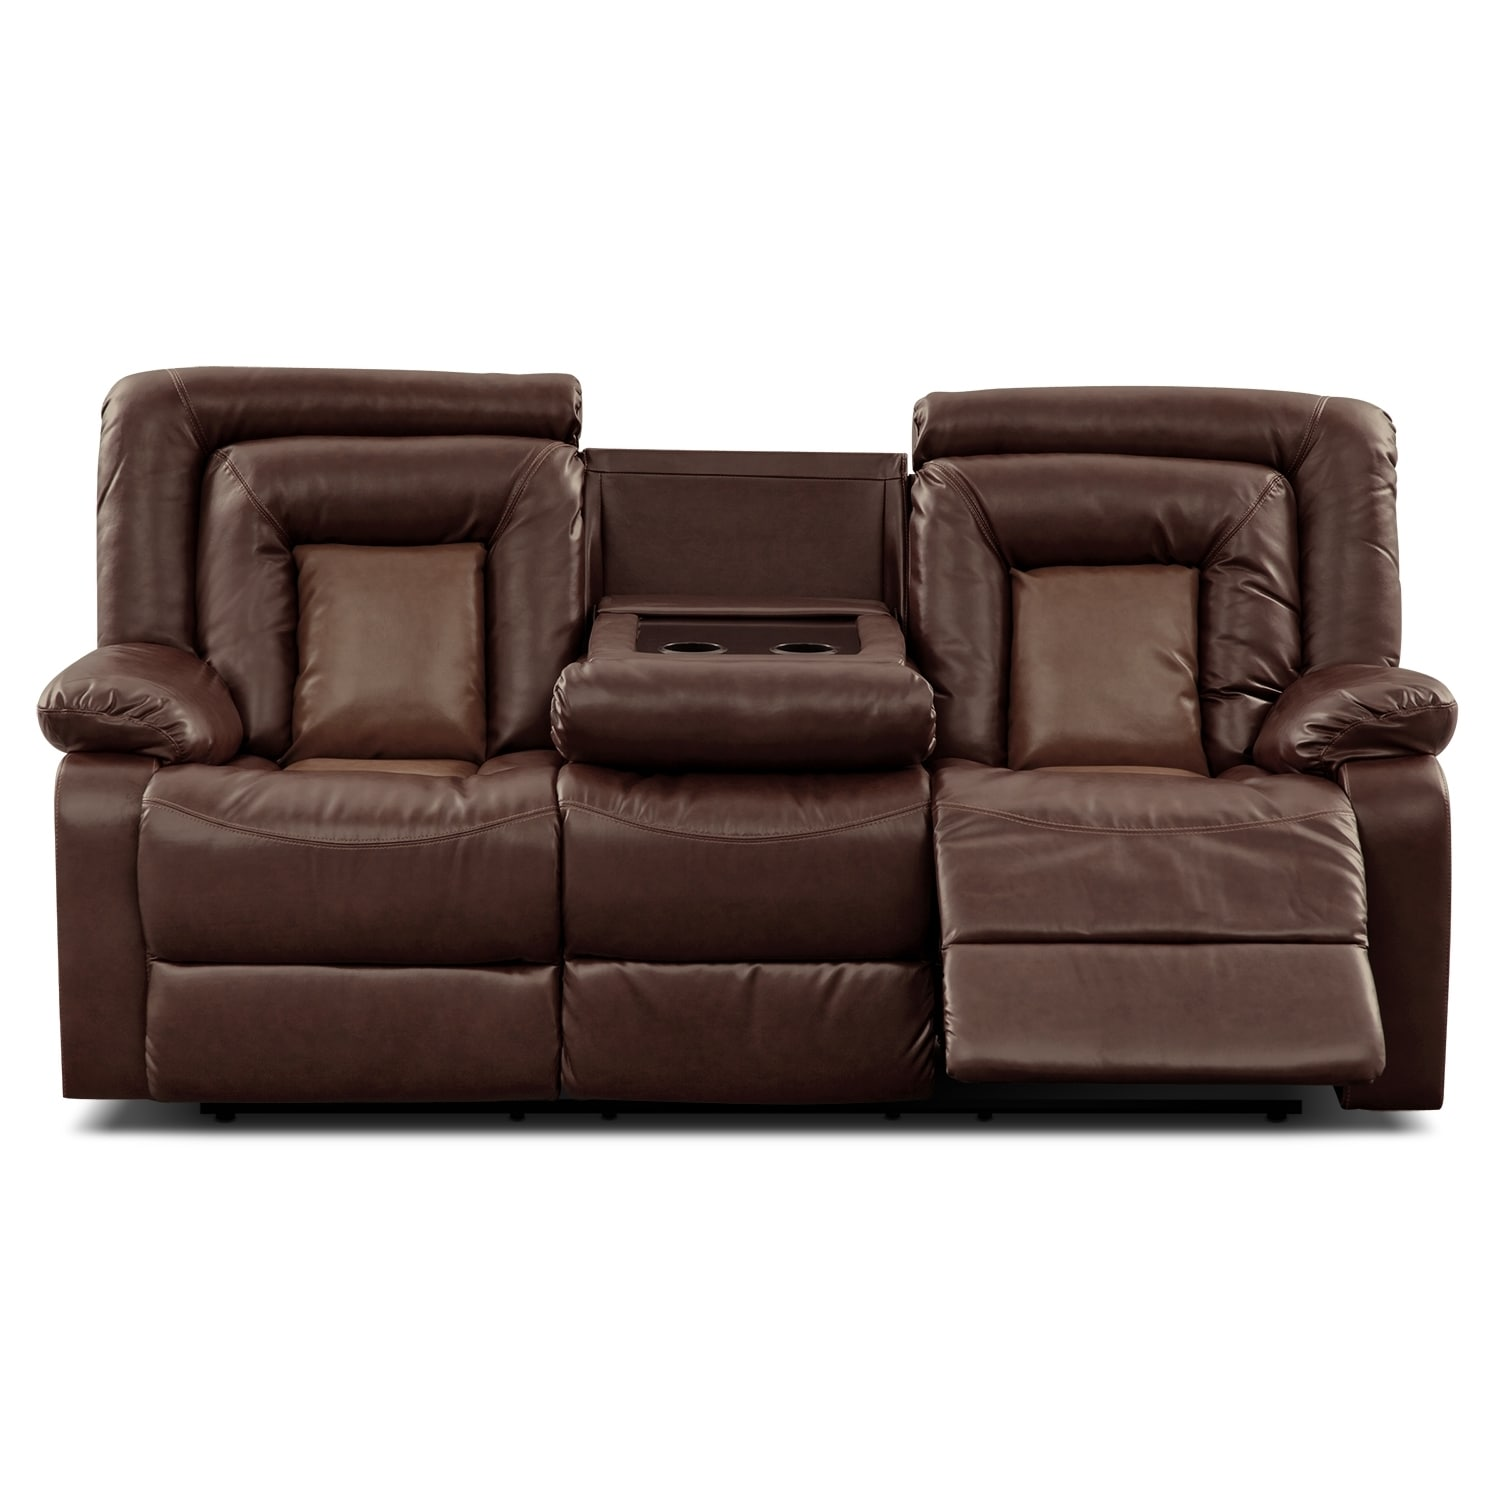 Shop Kmax 2 Toned Pu Dual Reclining Sofa With Drop Console Free